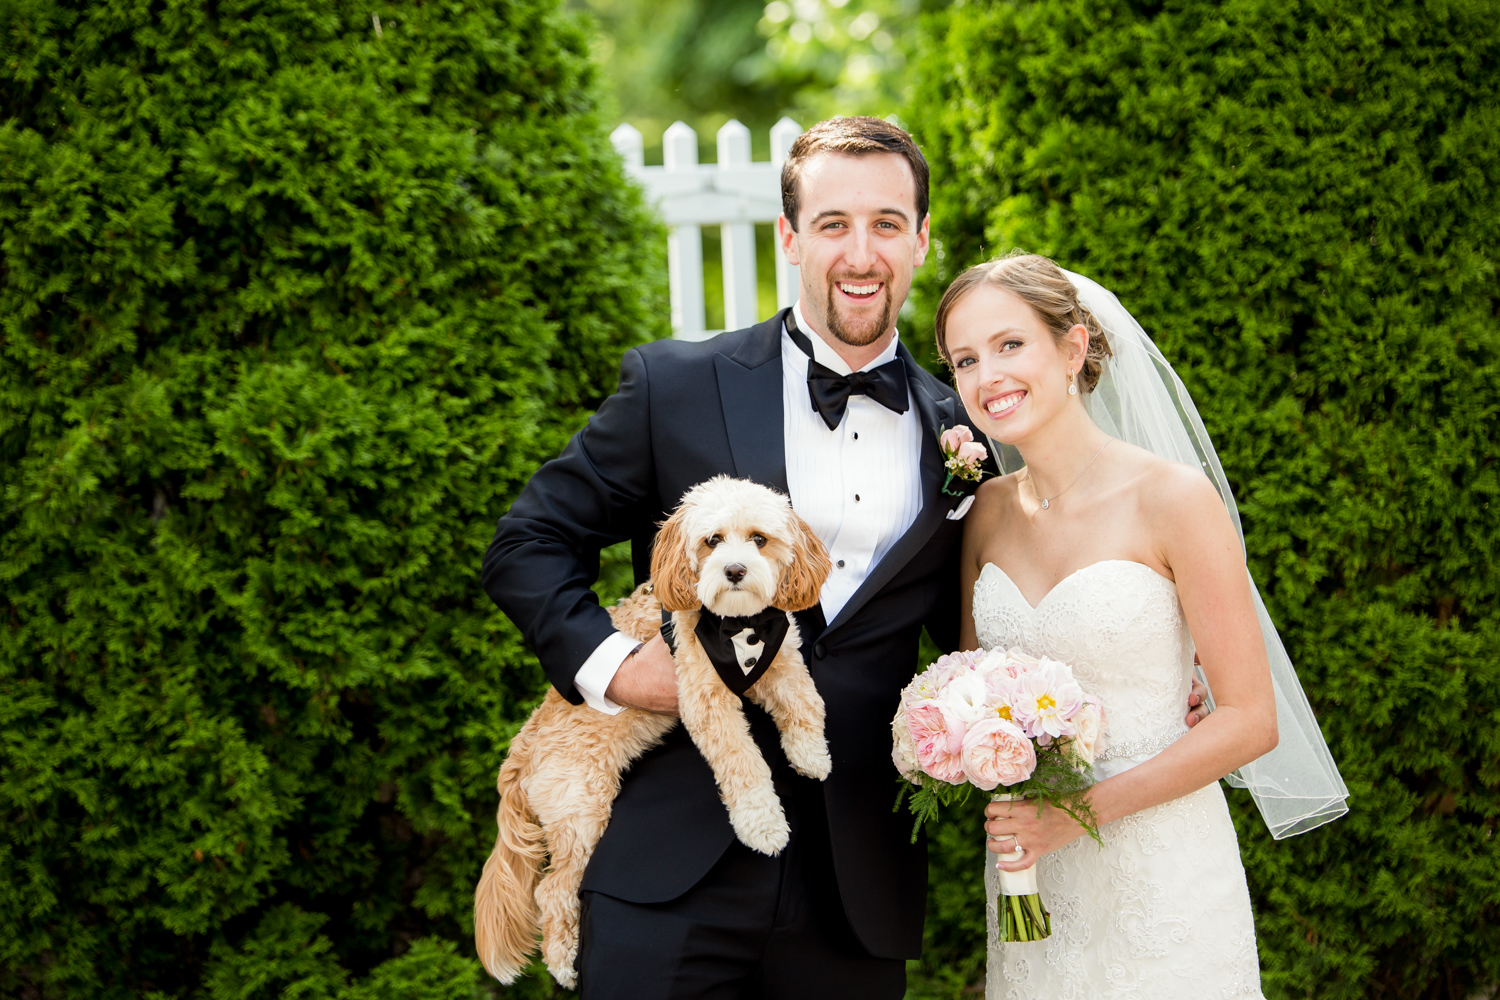 Becca & Jason - Topsfield Common 1854 Wedding